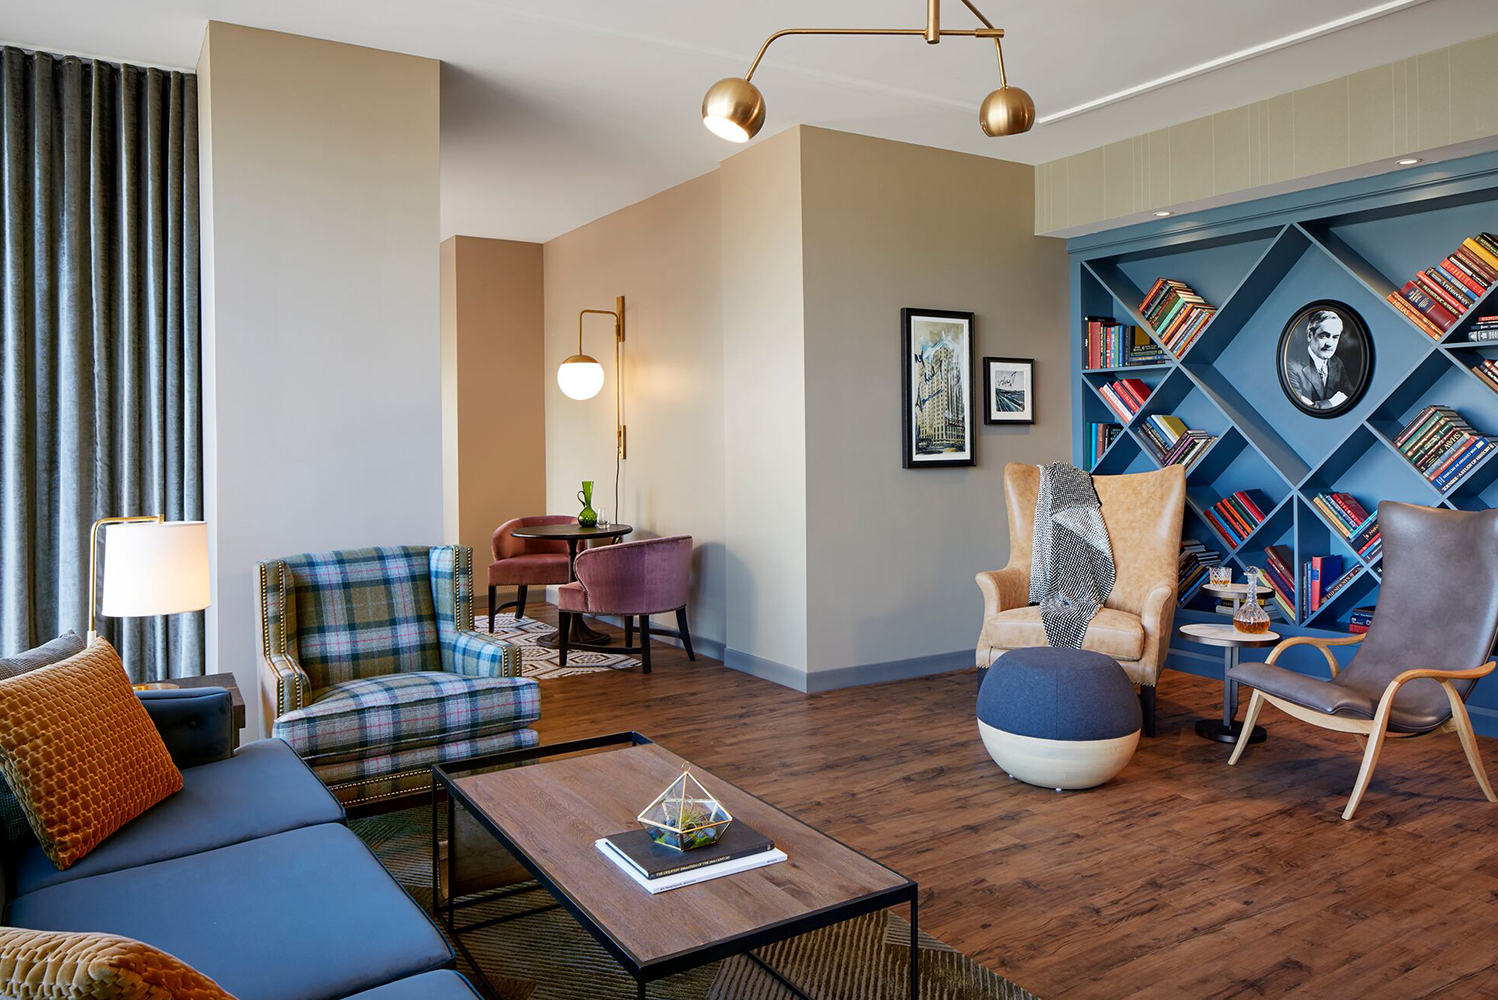 The rooms give nods to baseball and the surrounding neighborhood.